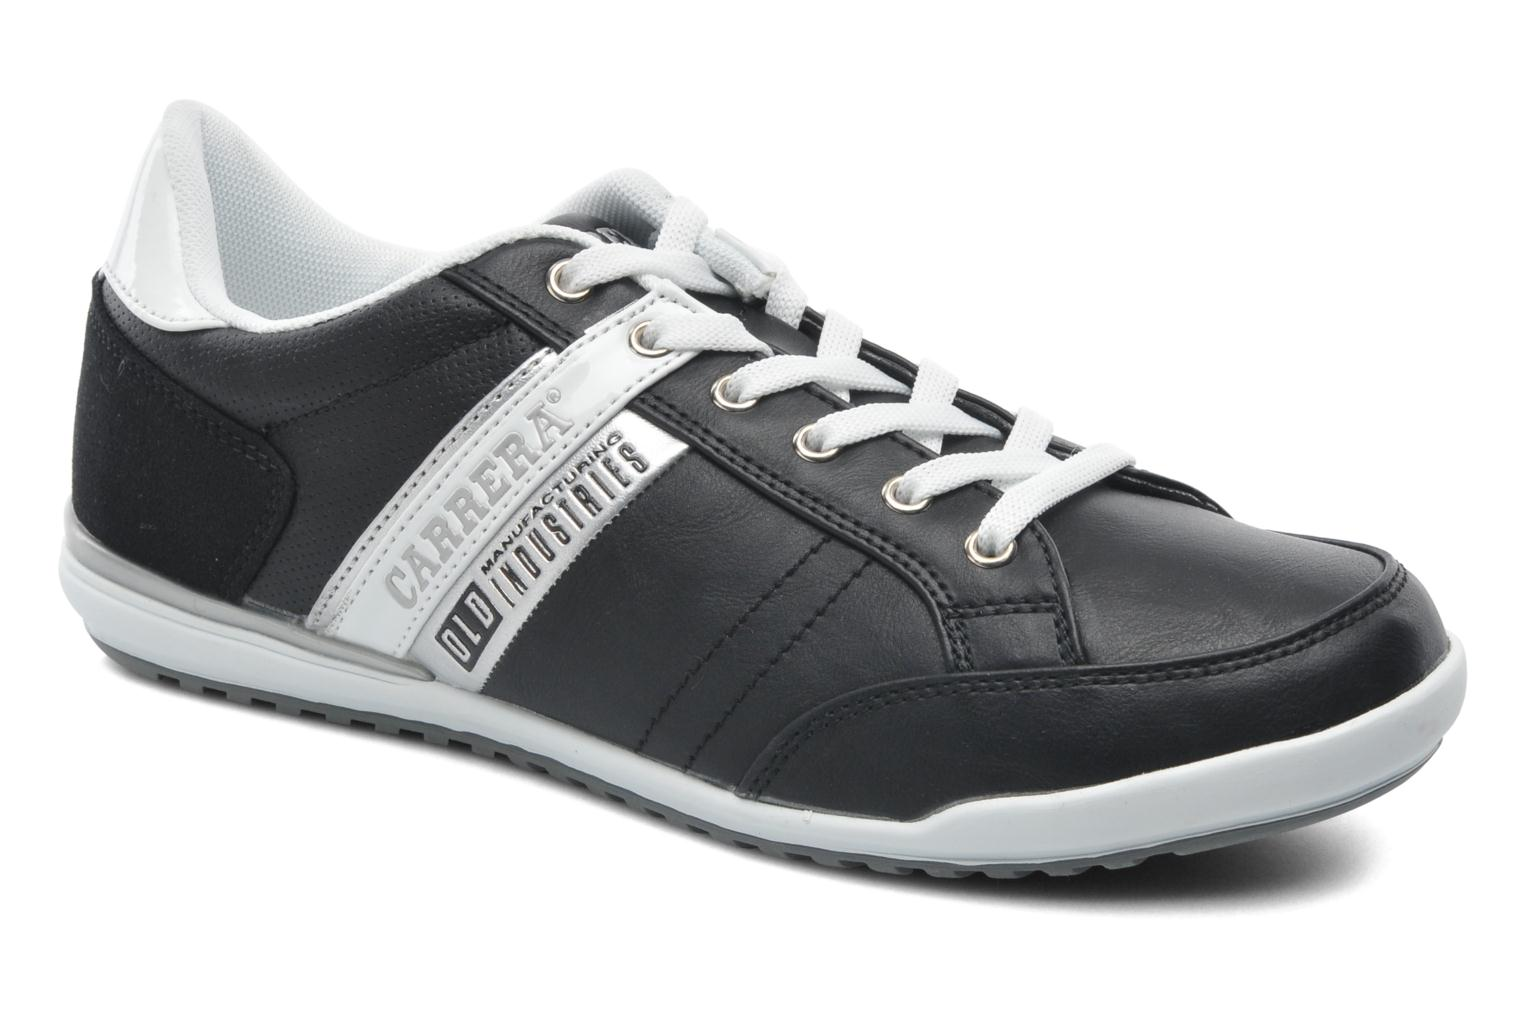 Sneakers New galles by Carrera